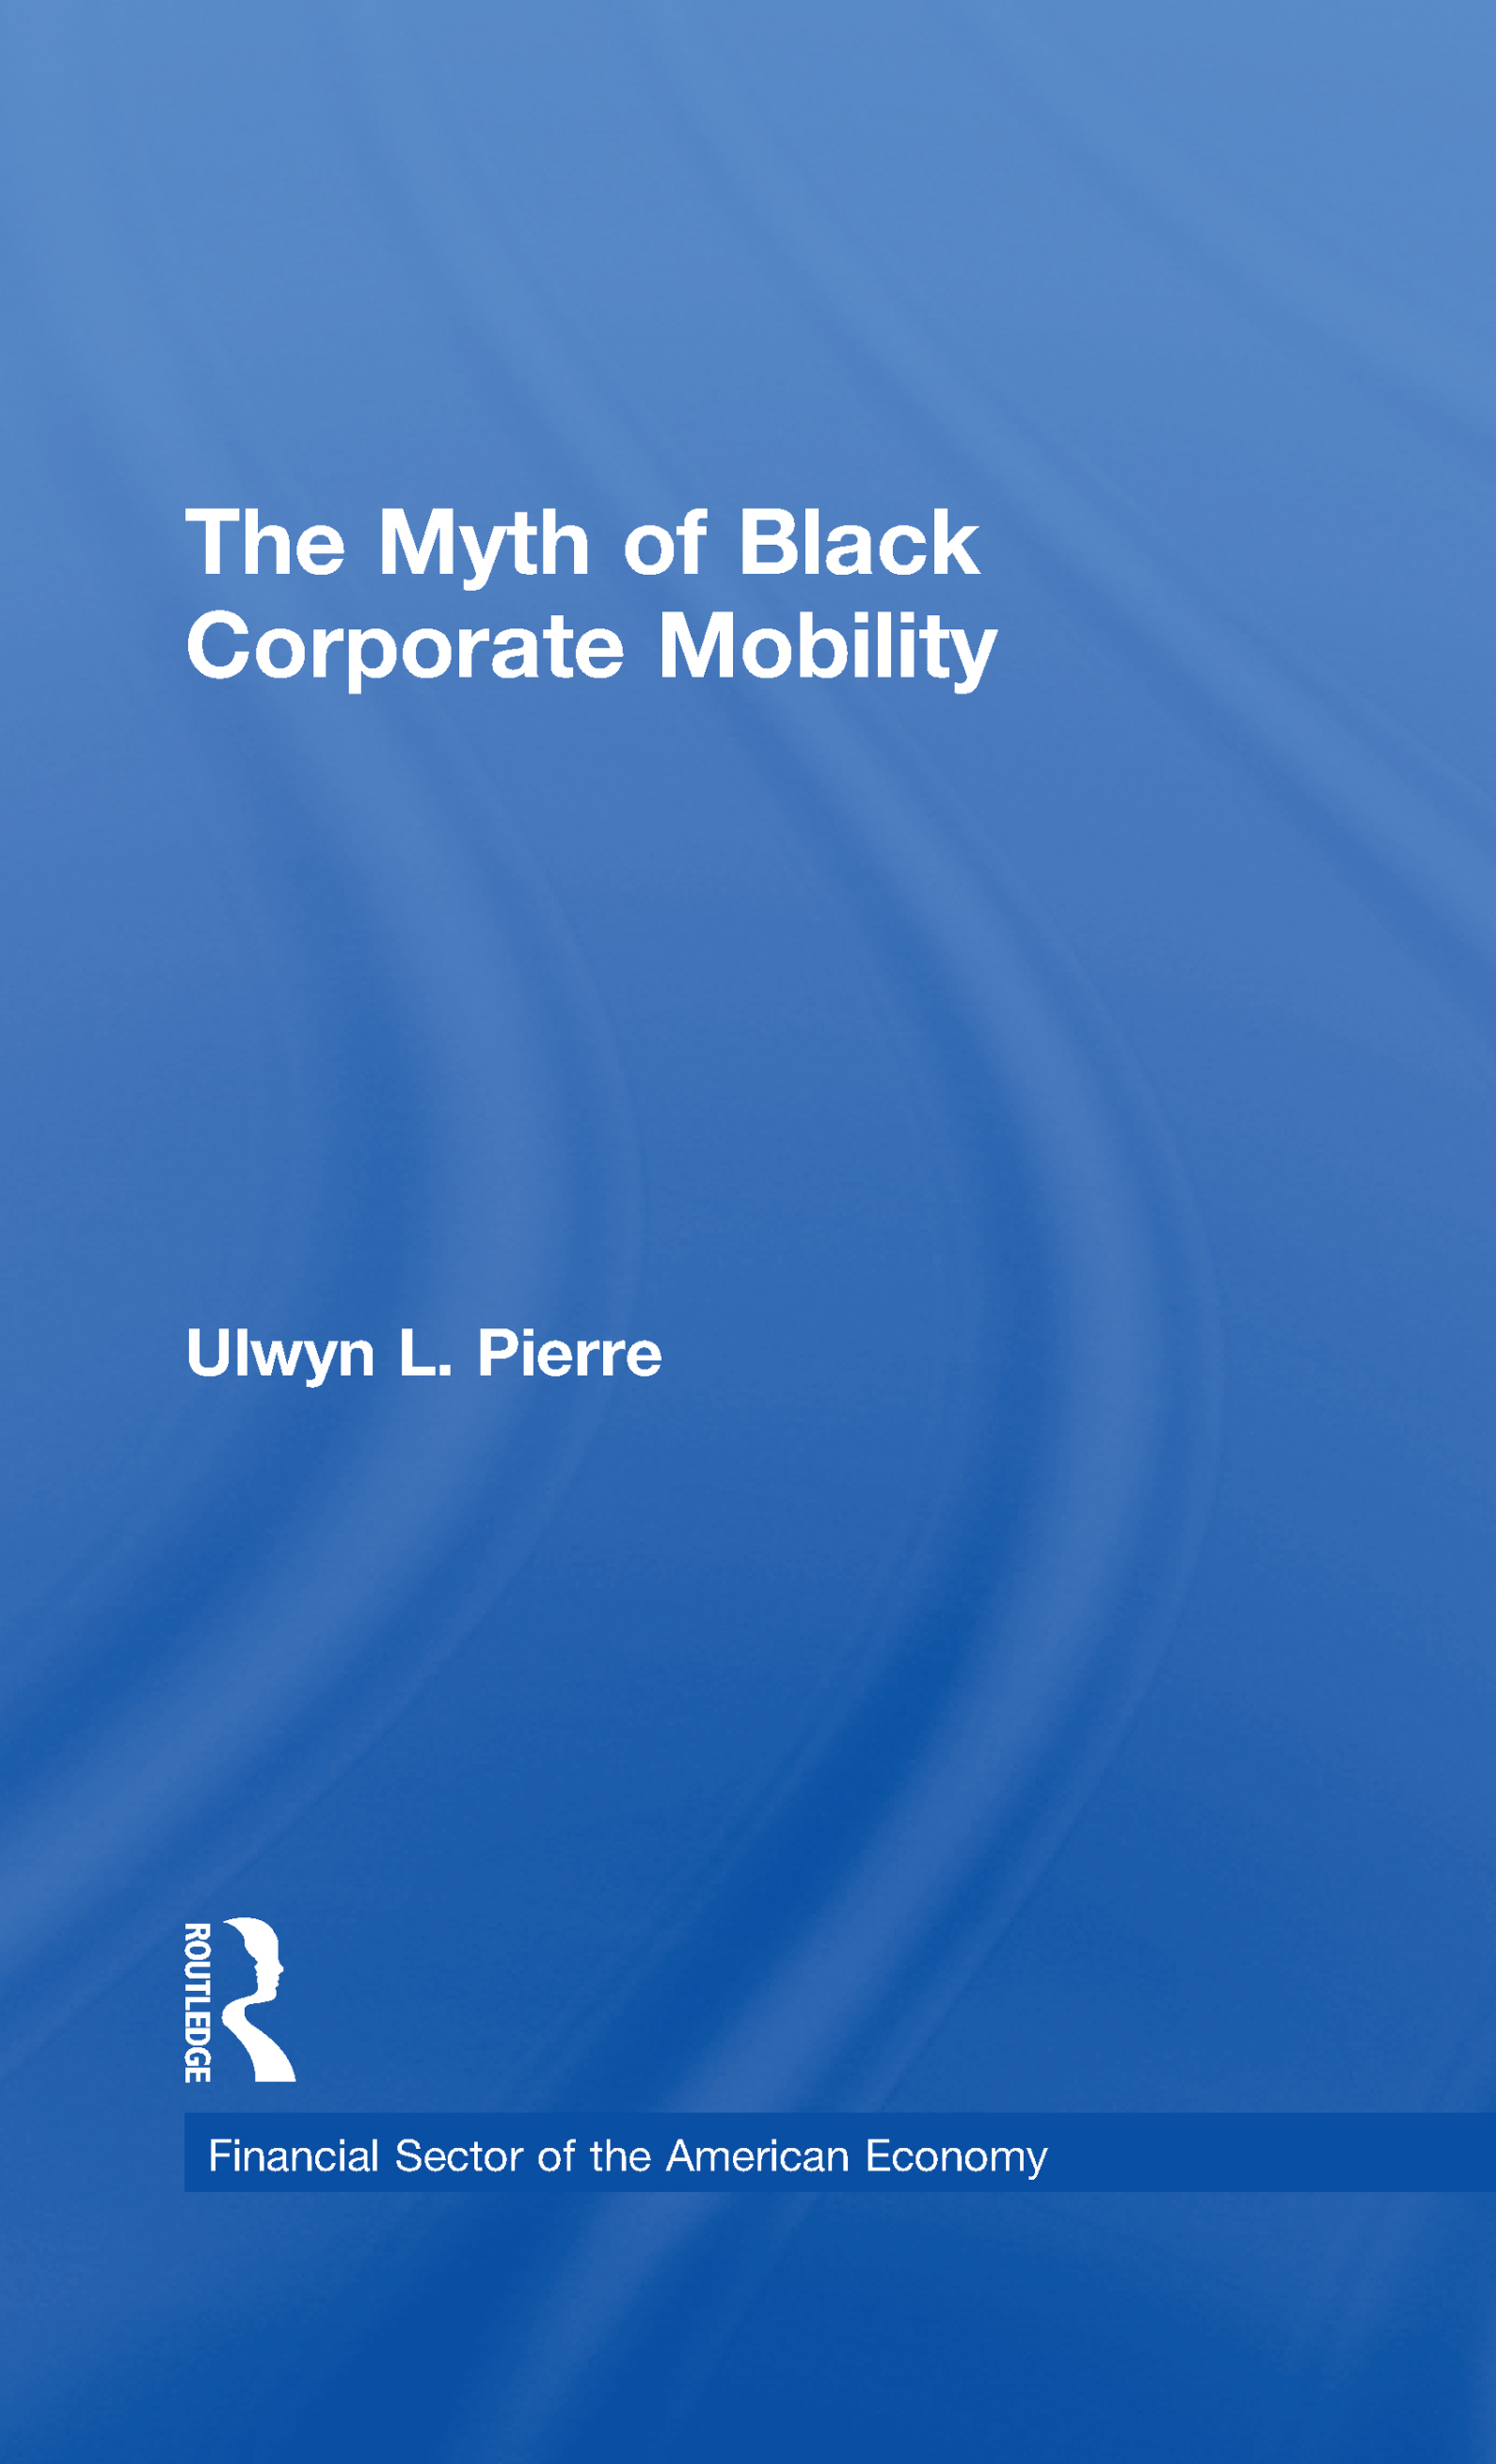 The Myth of Black Corporate Mobility book cover